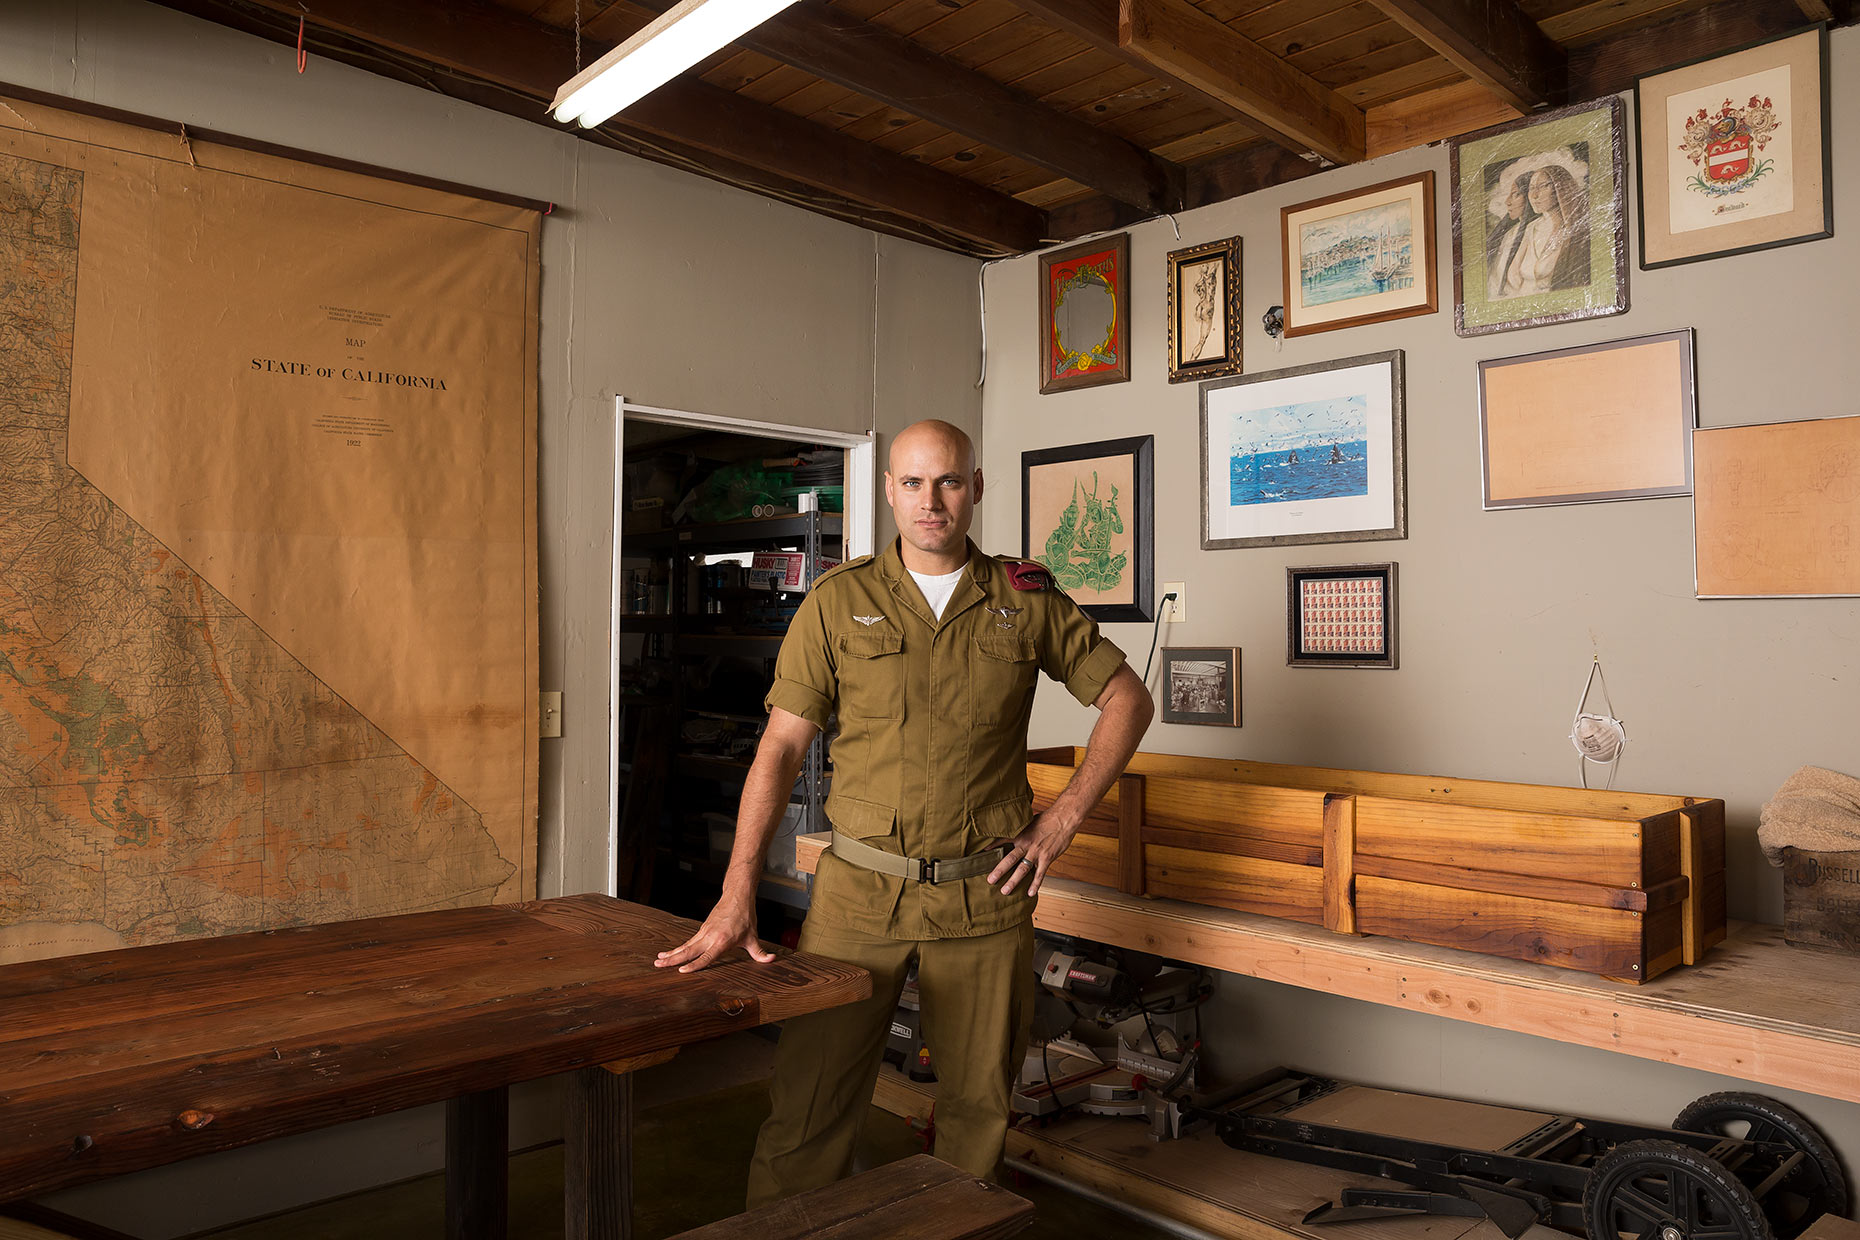 Right Next Door: Jonathan Burch, Former Isreali Army Soldier